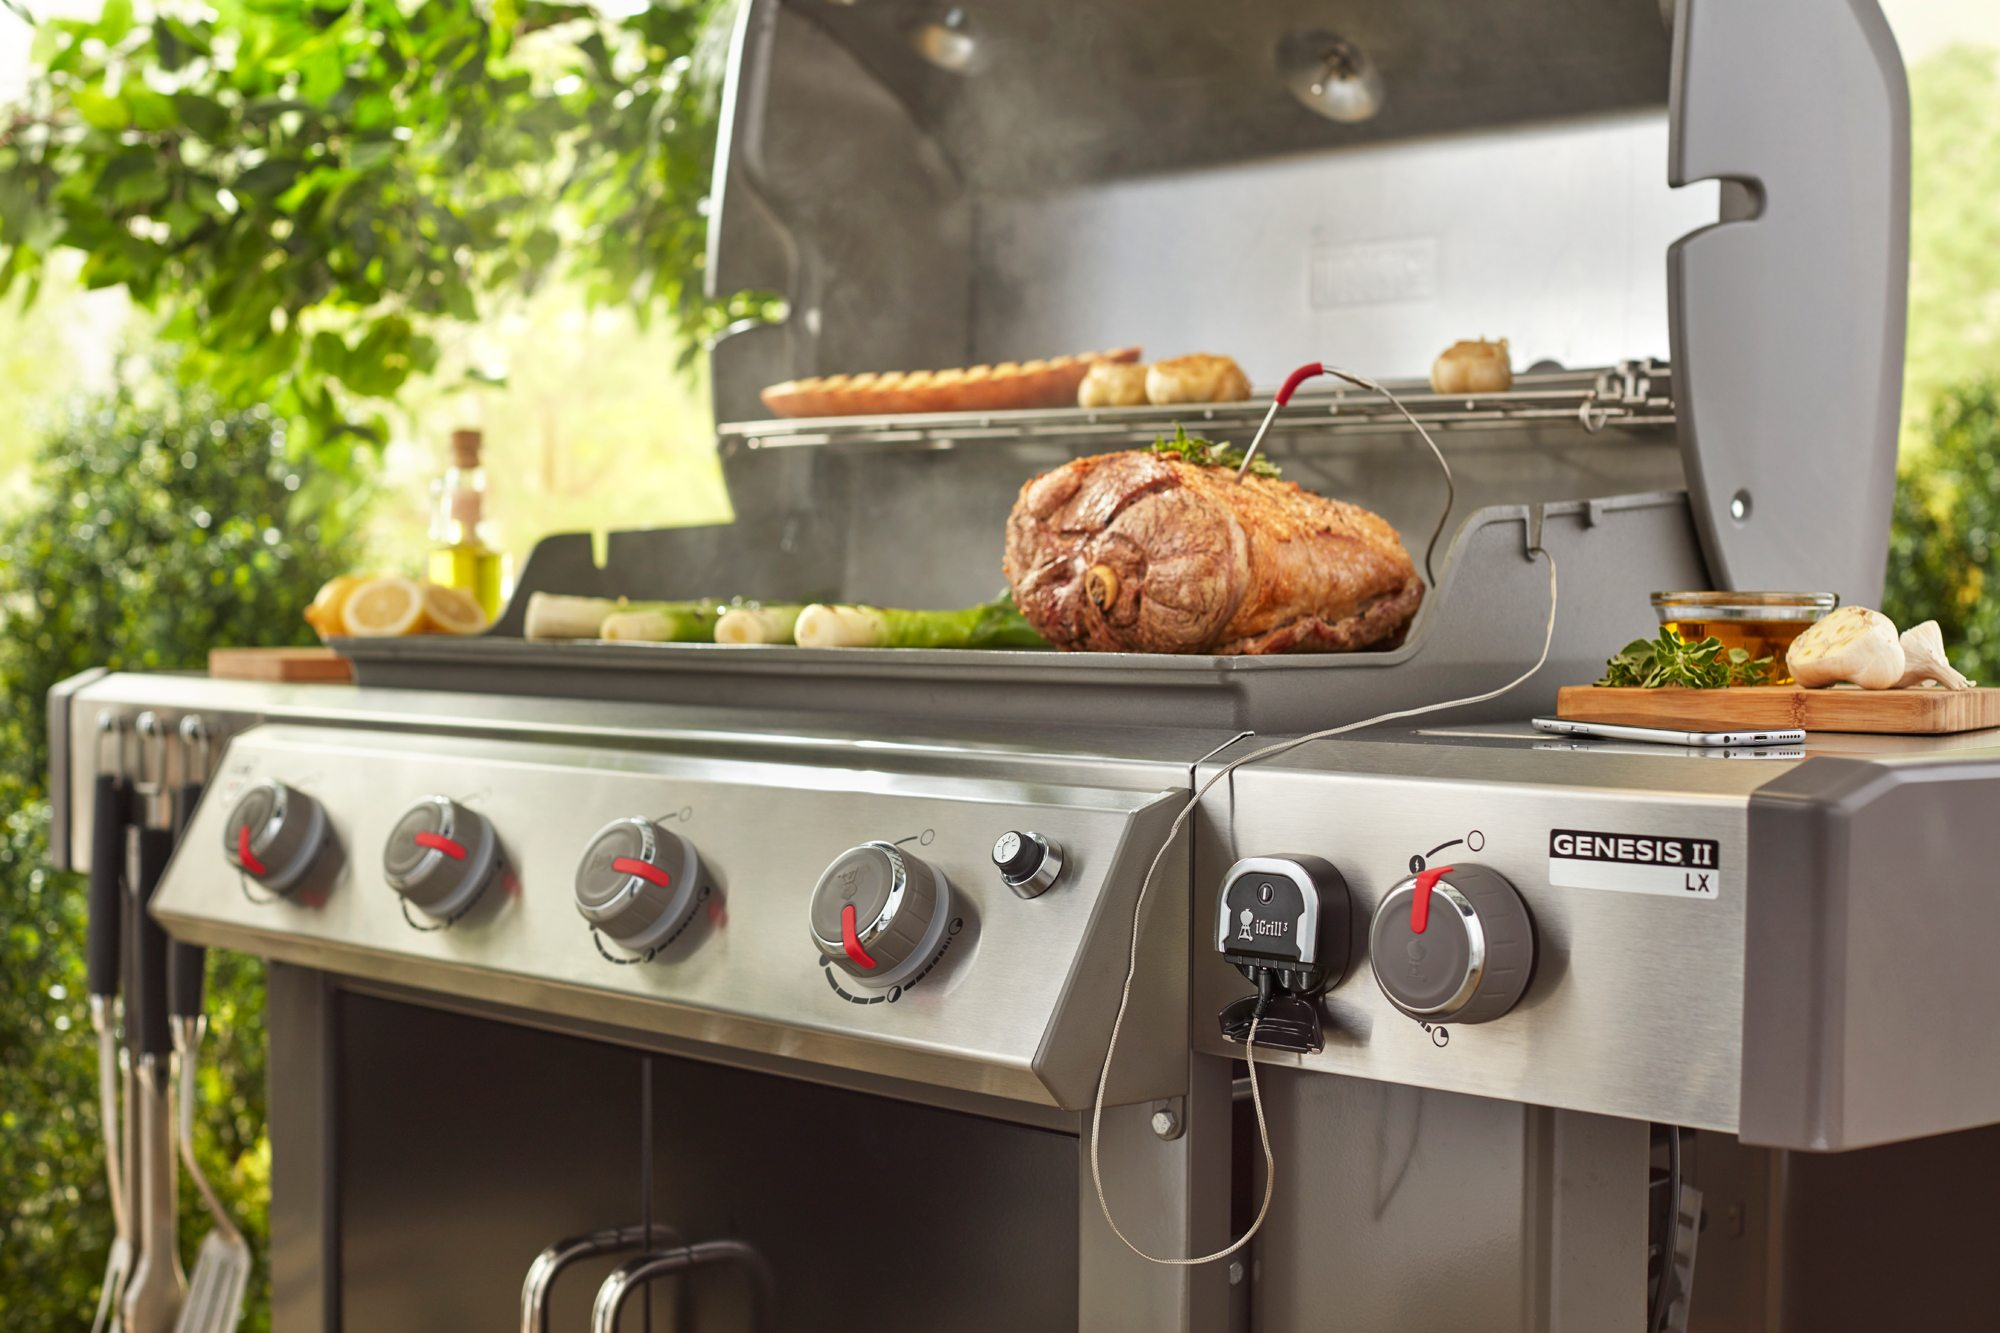 Convert Outdoor Gourmet Grill To Natural Gas